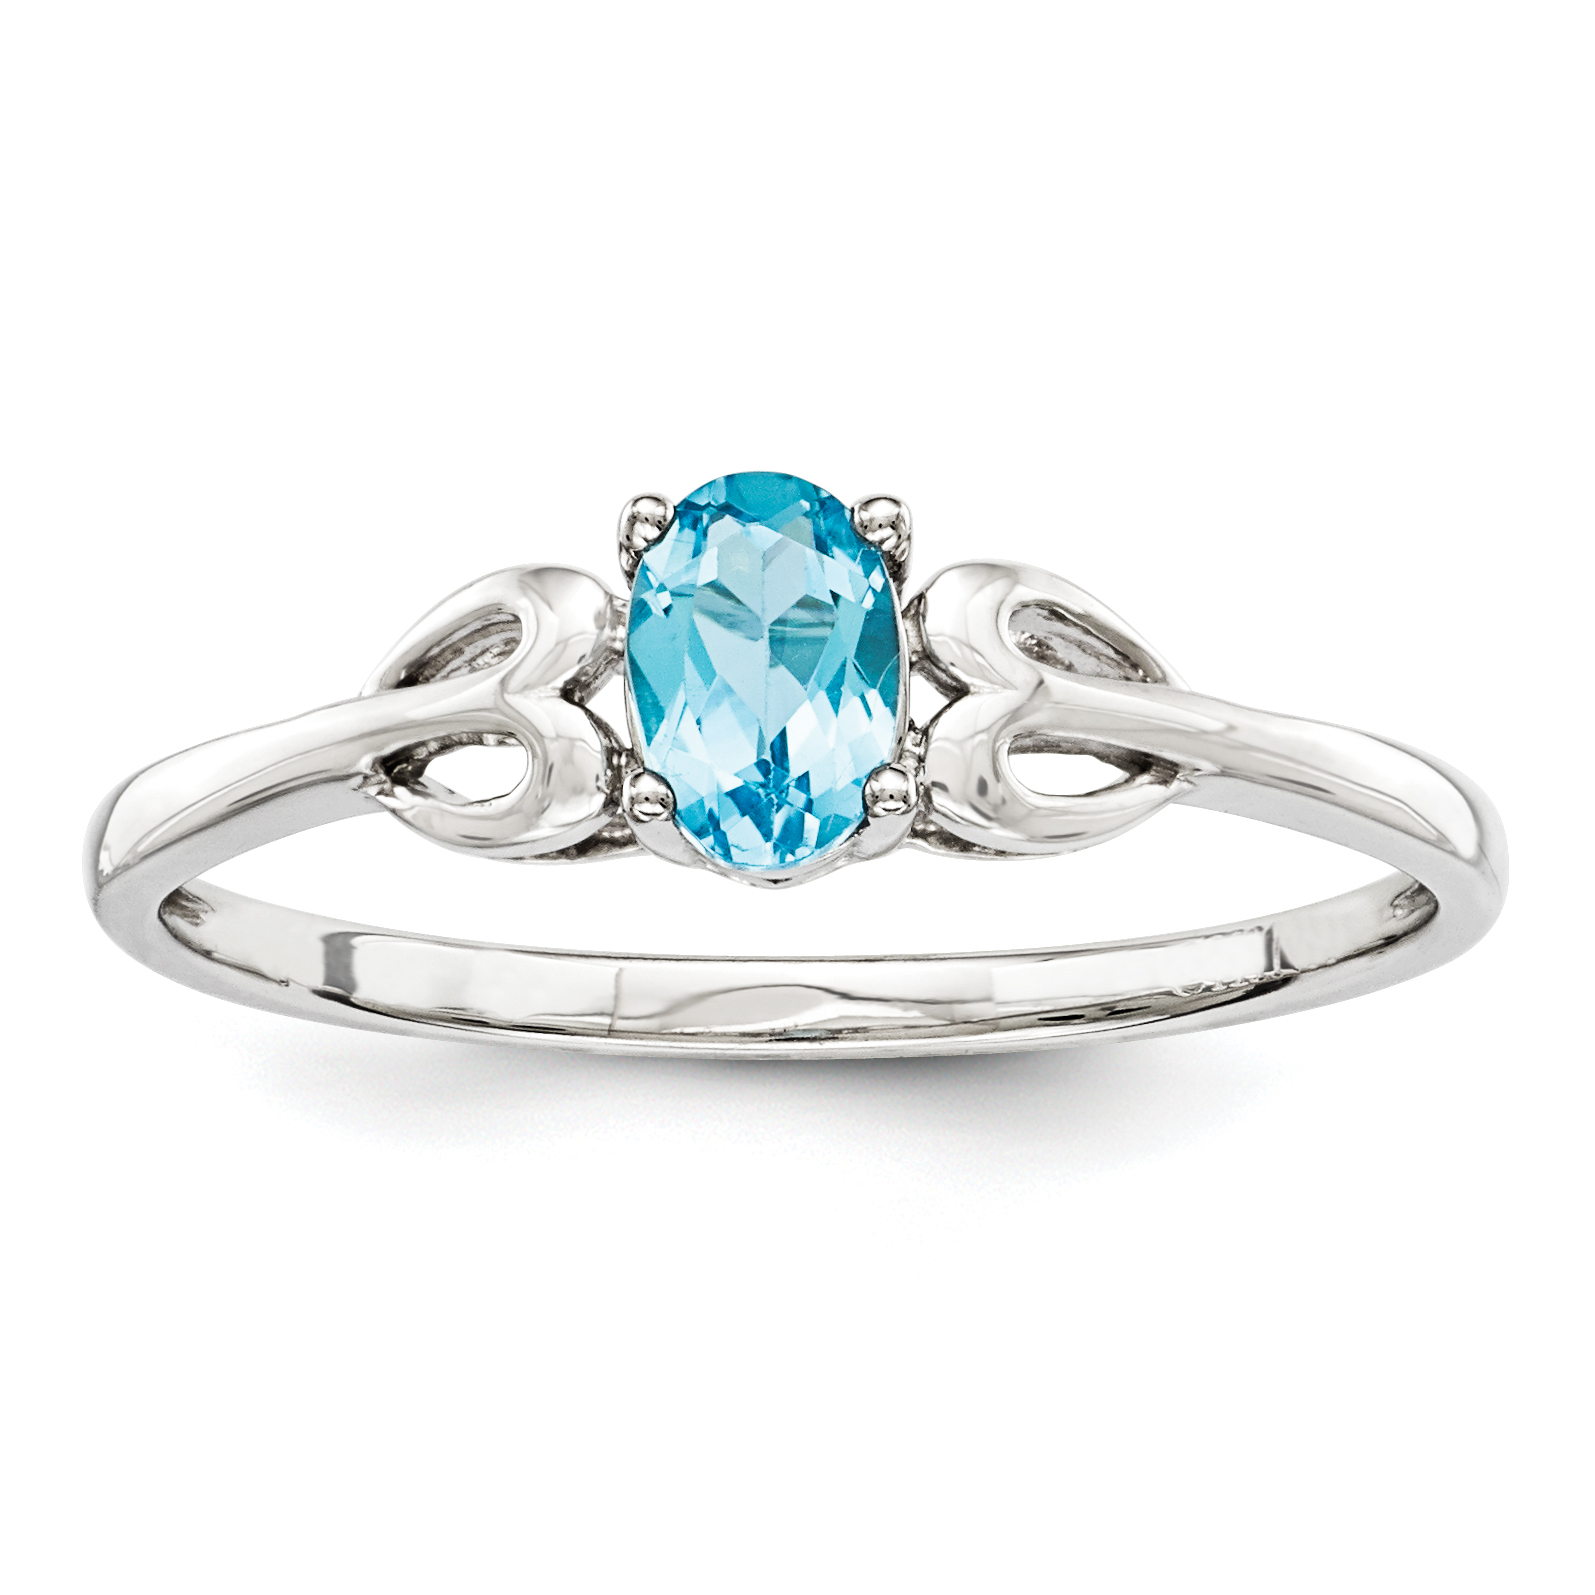 Roy Rose Jewelry Sterling Silver Light Swiss Blue Topaz Ring ~ Size 6